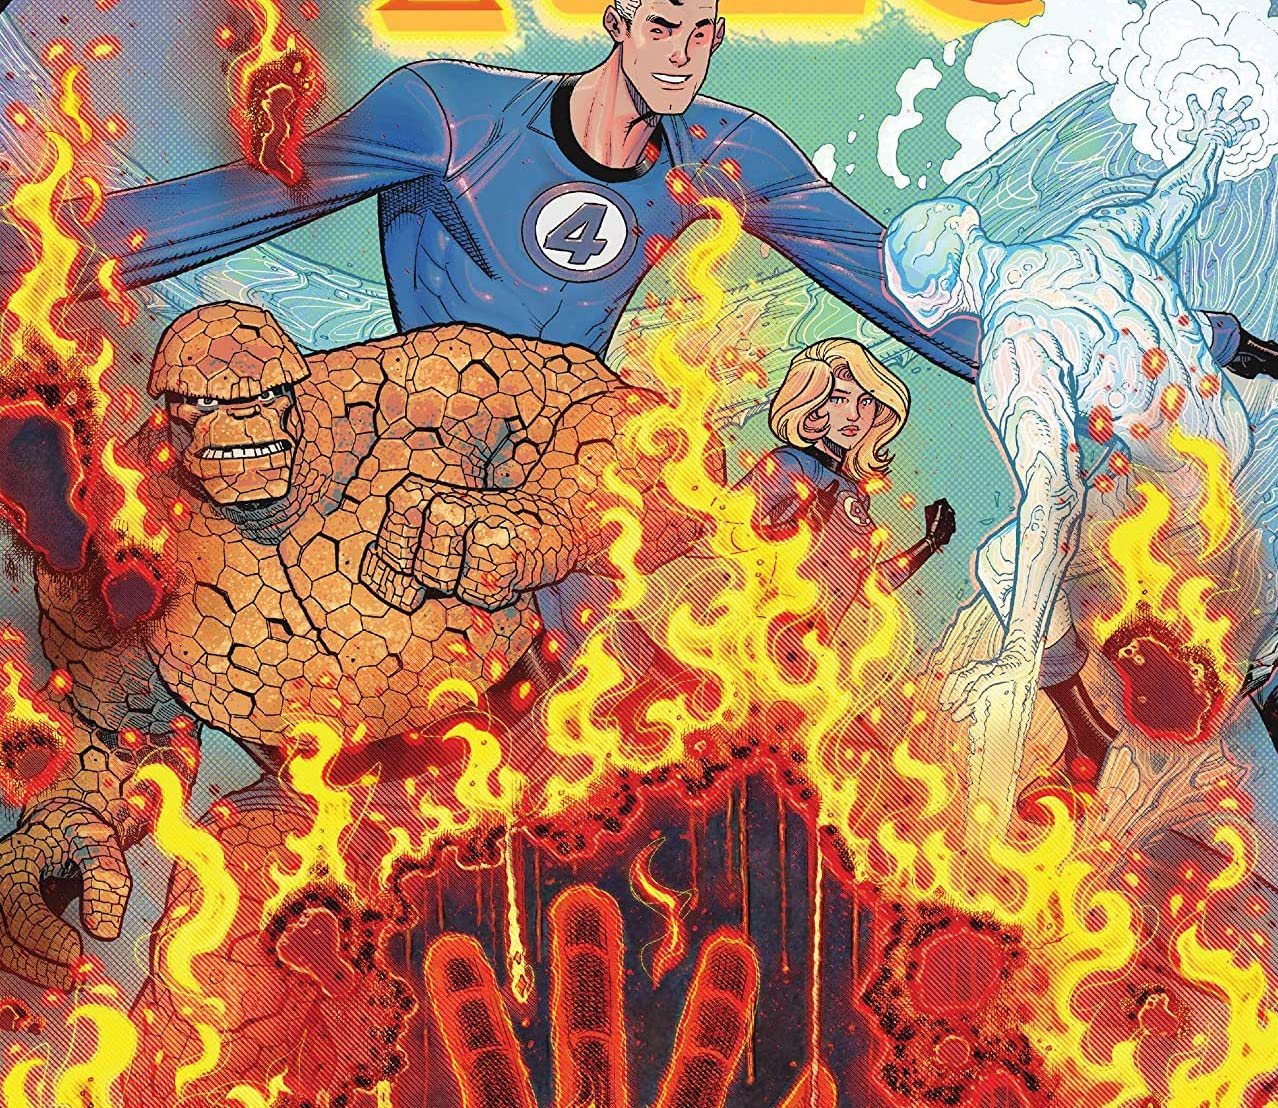 'Fantastic Four' #24 review: Wholesome and fun